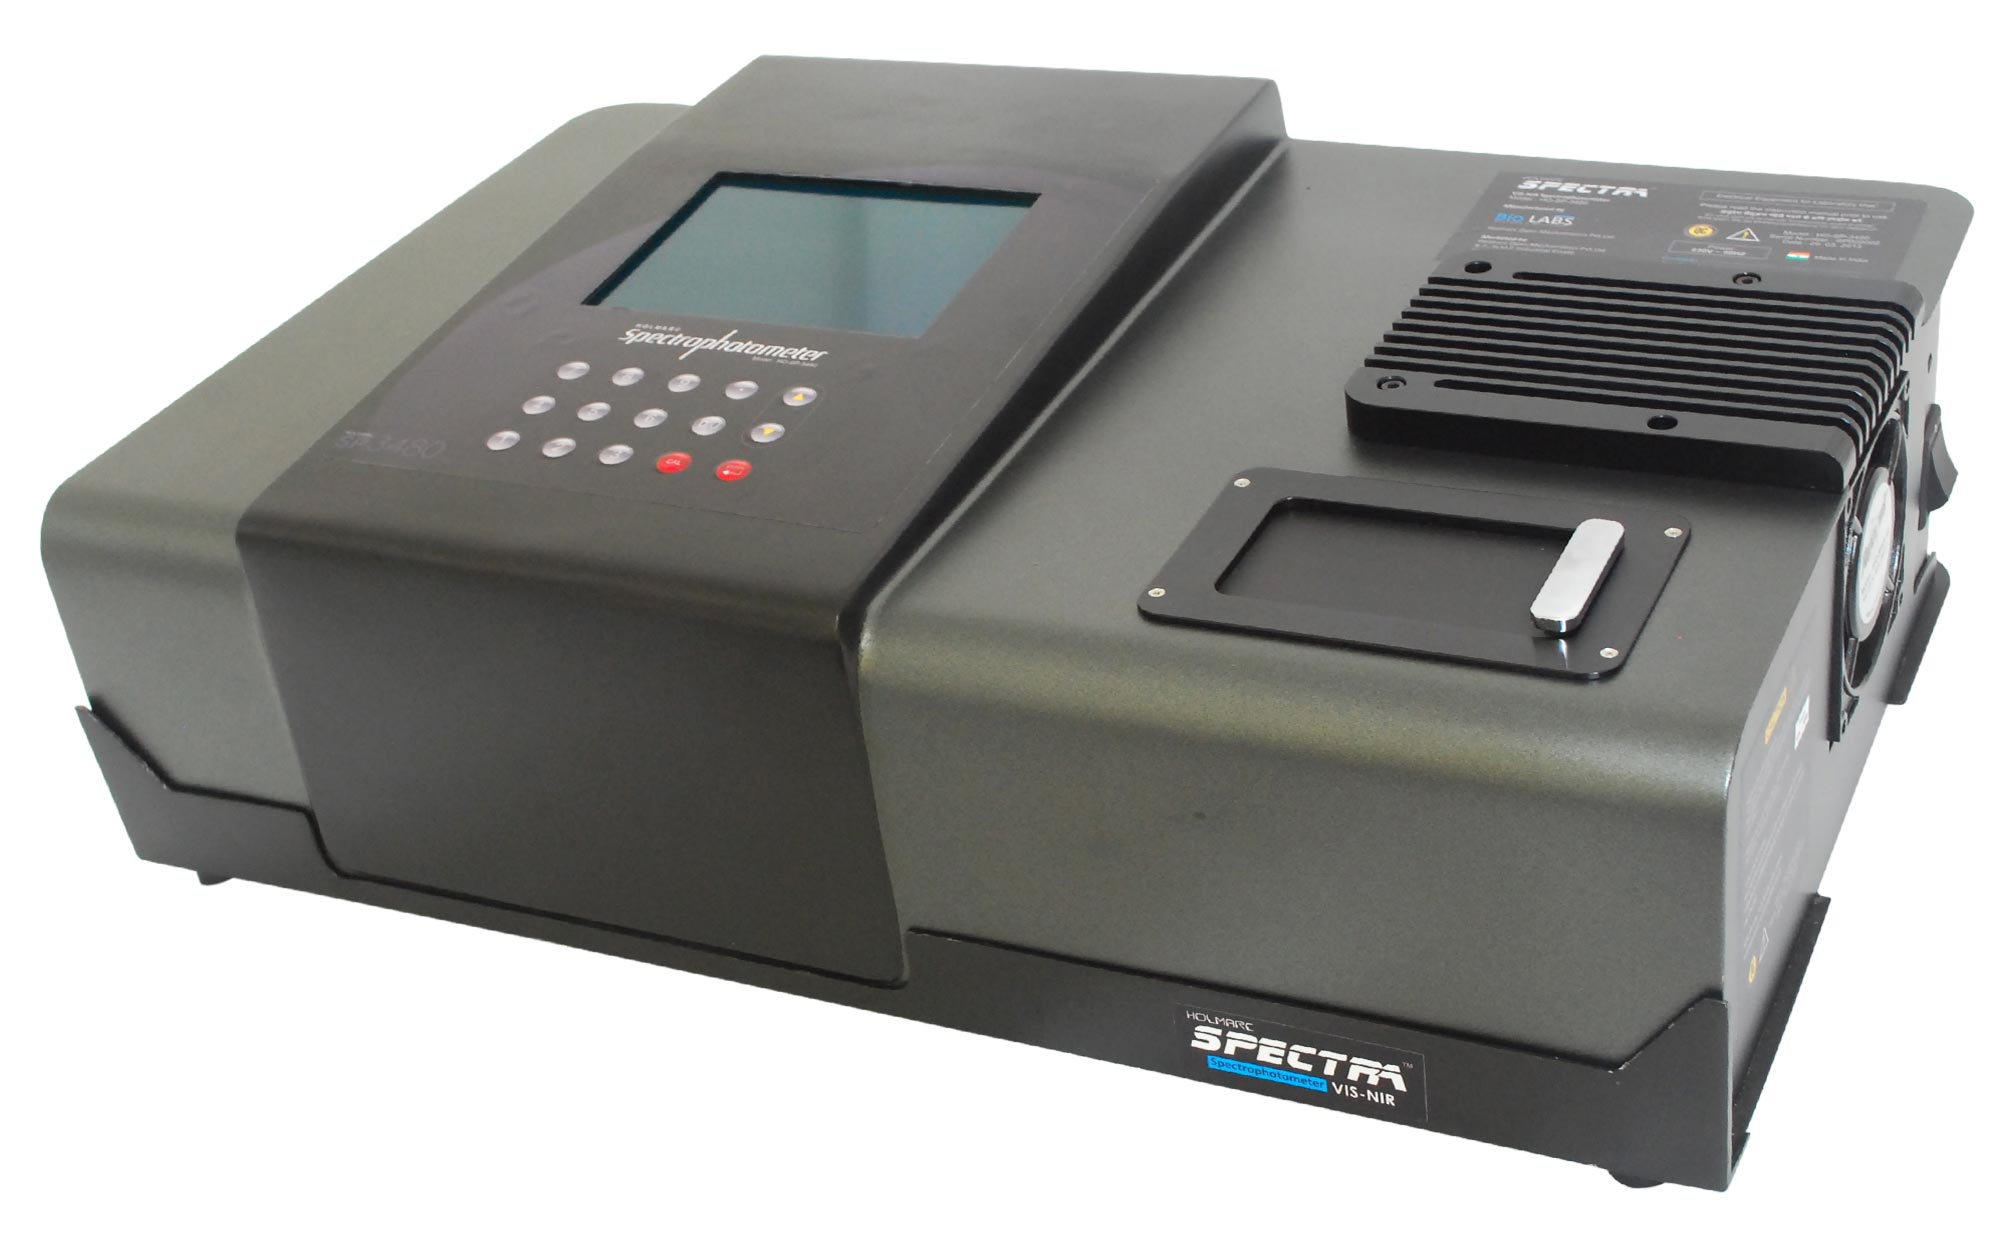 uv spectrophotometer Uv visible spectrophotometers series set new standards the series specord ® covers the range from high-performance real double-beam instruments with cooled double detection (cdd) to high power diode-array systems for simultaneous high speed measurement and spectrophotometer using split-beam-technology (sbt.